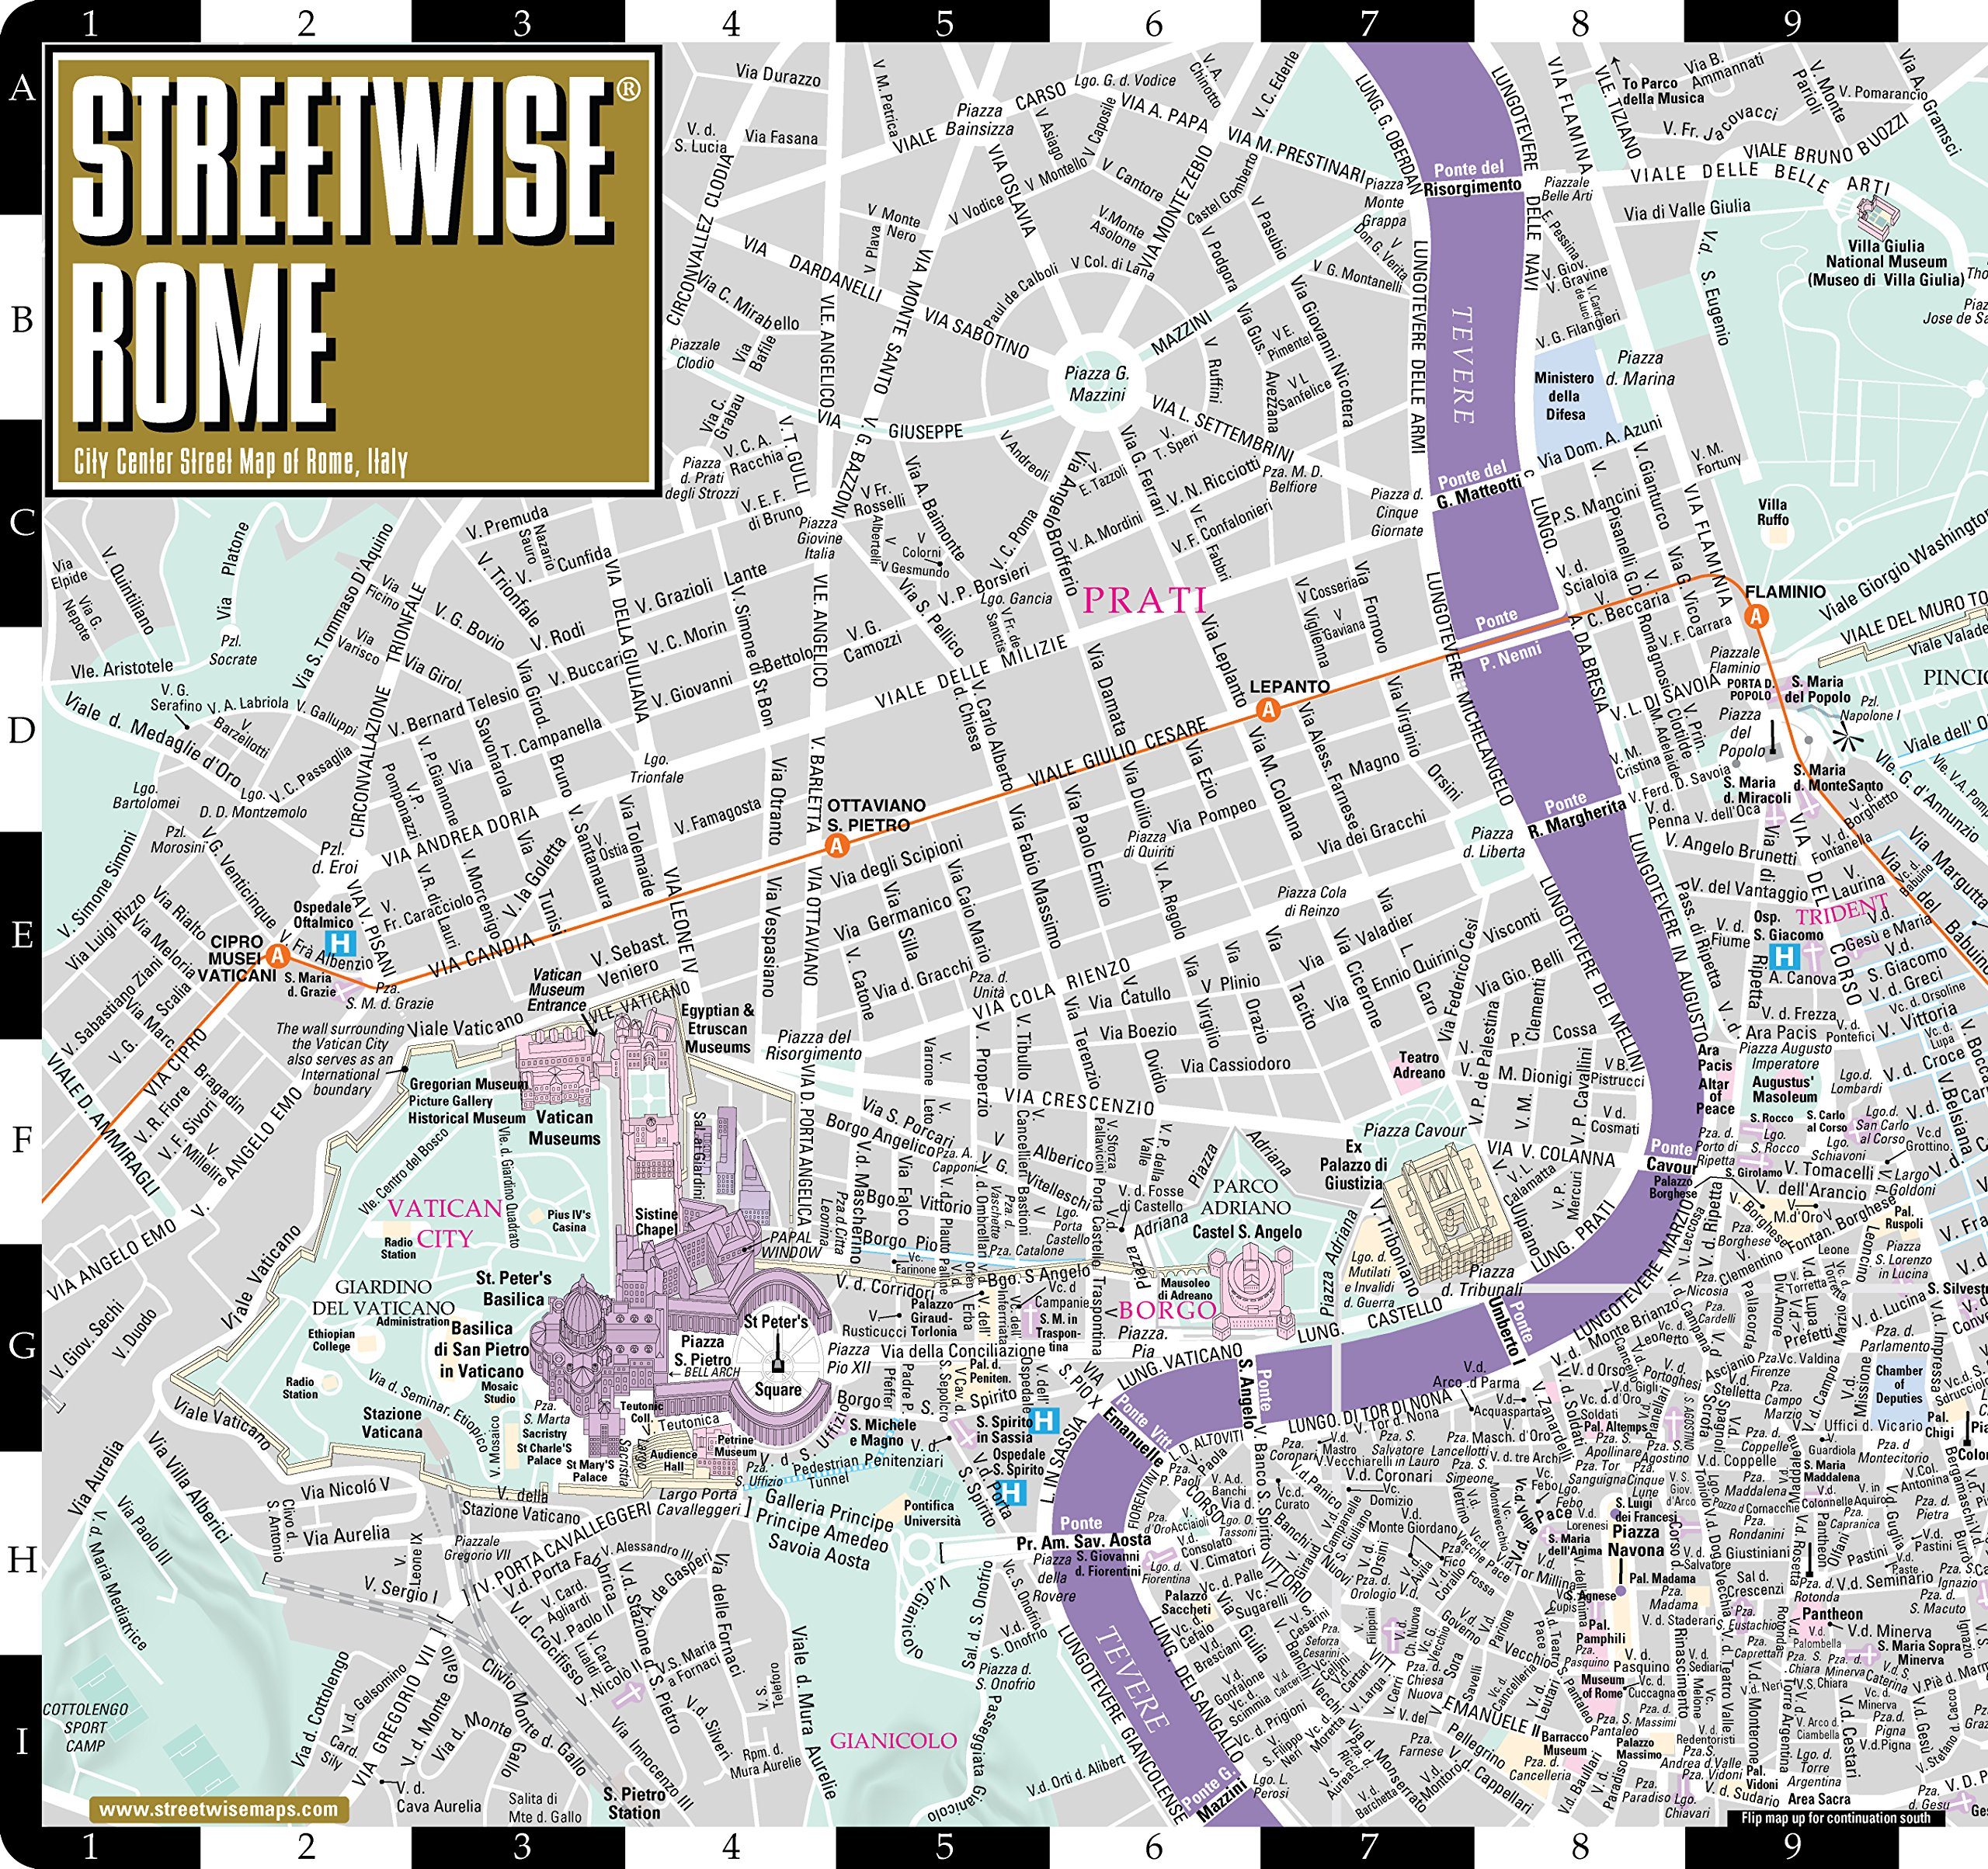 Streetwise Rome Map - Laminated City Center Street Map of Rome ... on